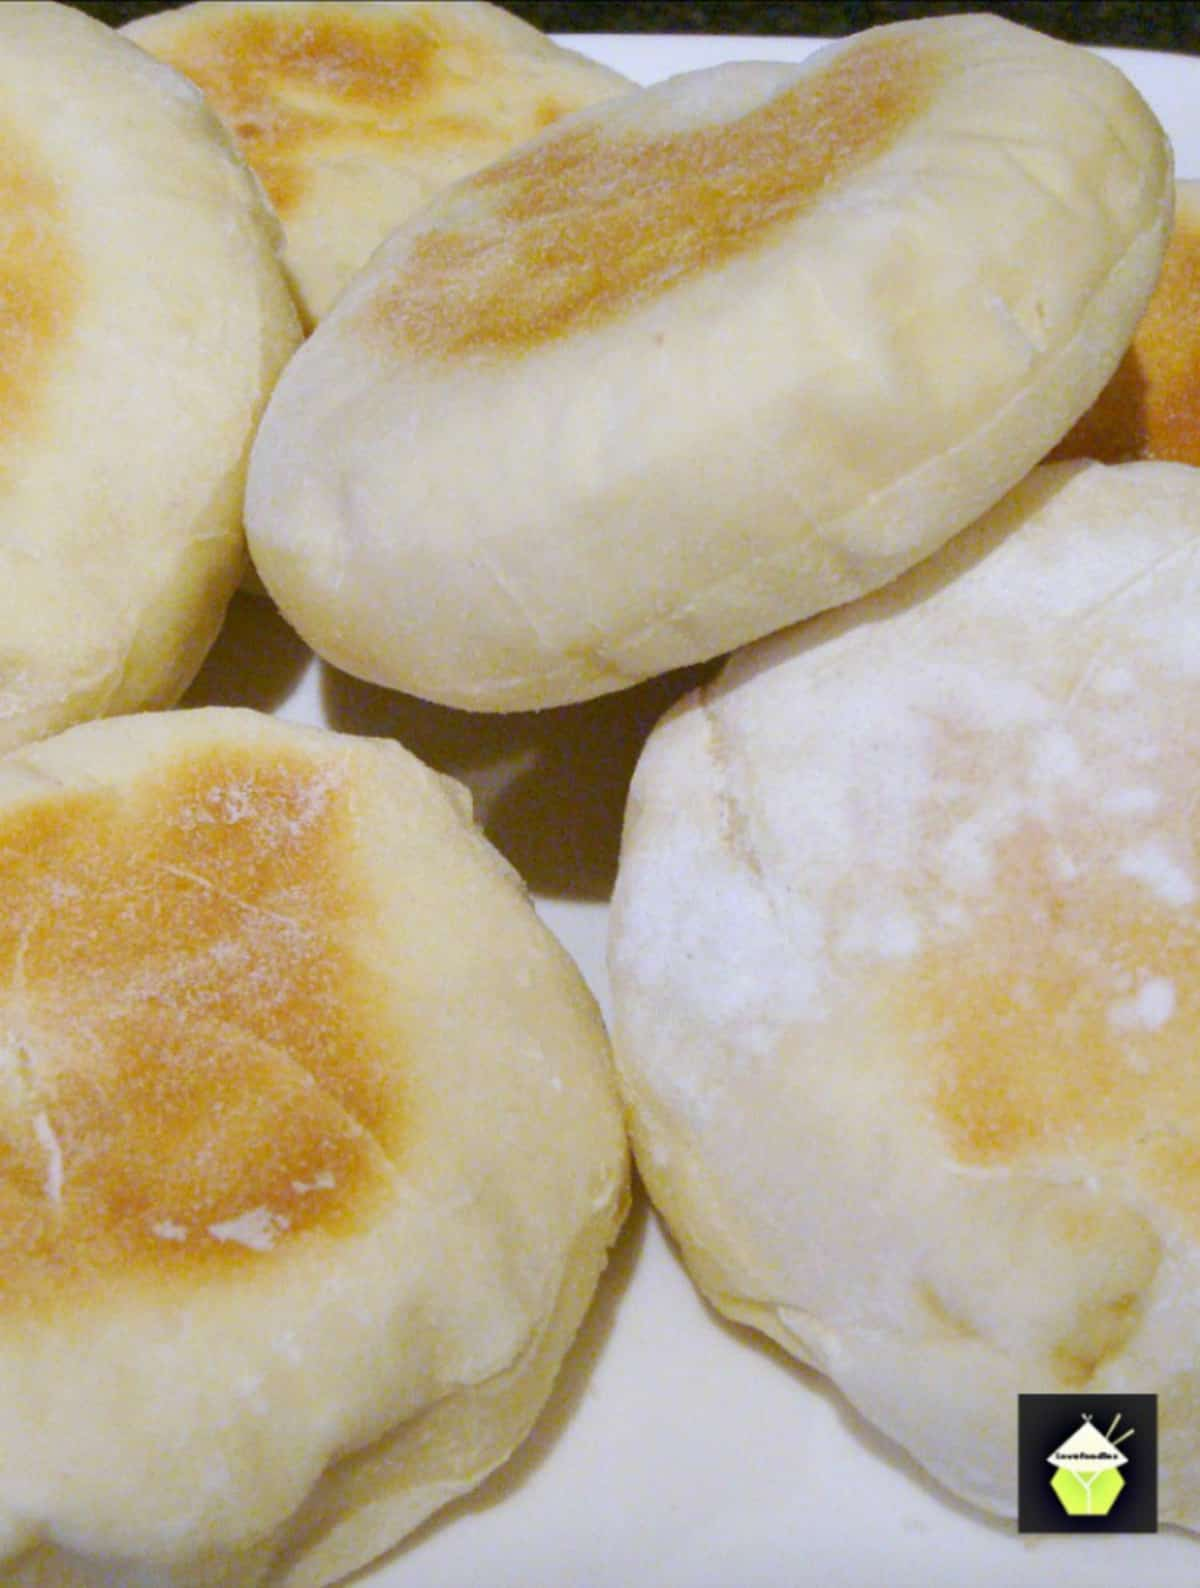 Delicious English Muffins Delicious English bread recipe, often eaten for breakfast. Serve warm with butter! You can eat these sweet or savory! Freezer friendly too! Simple recipe